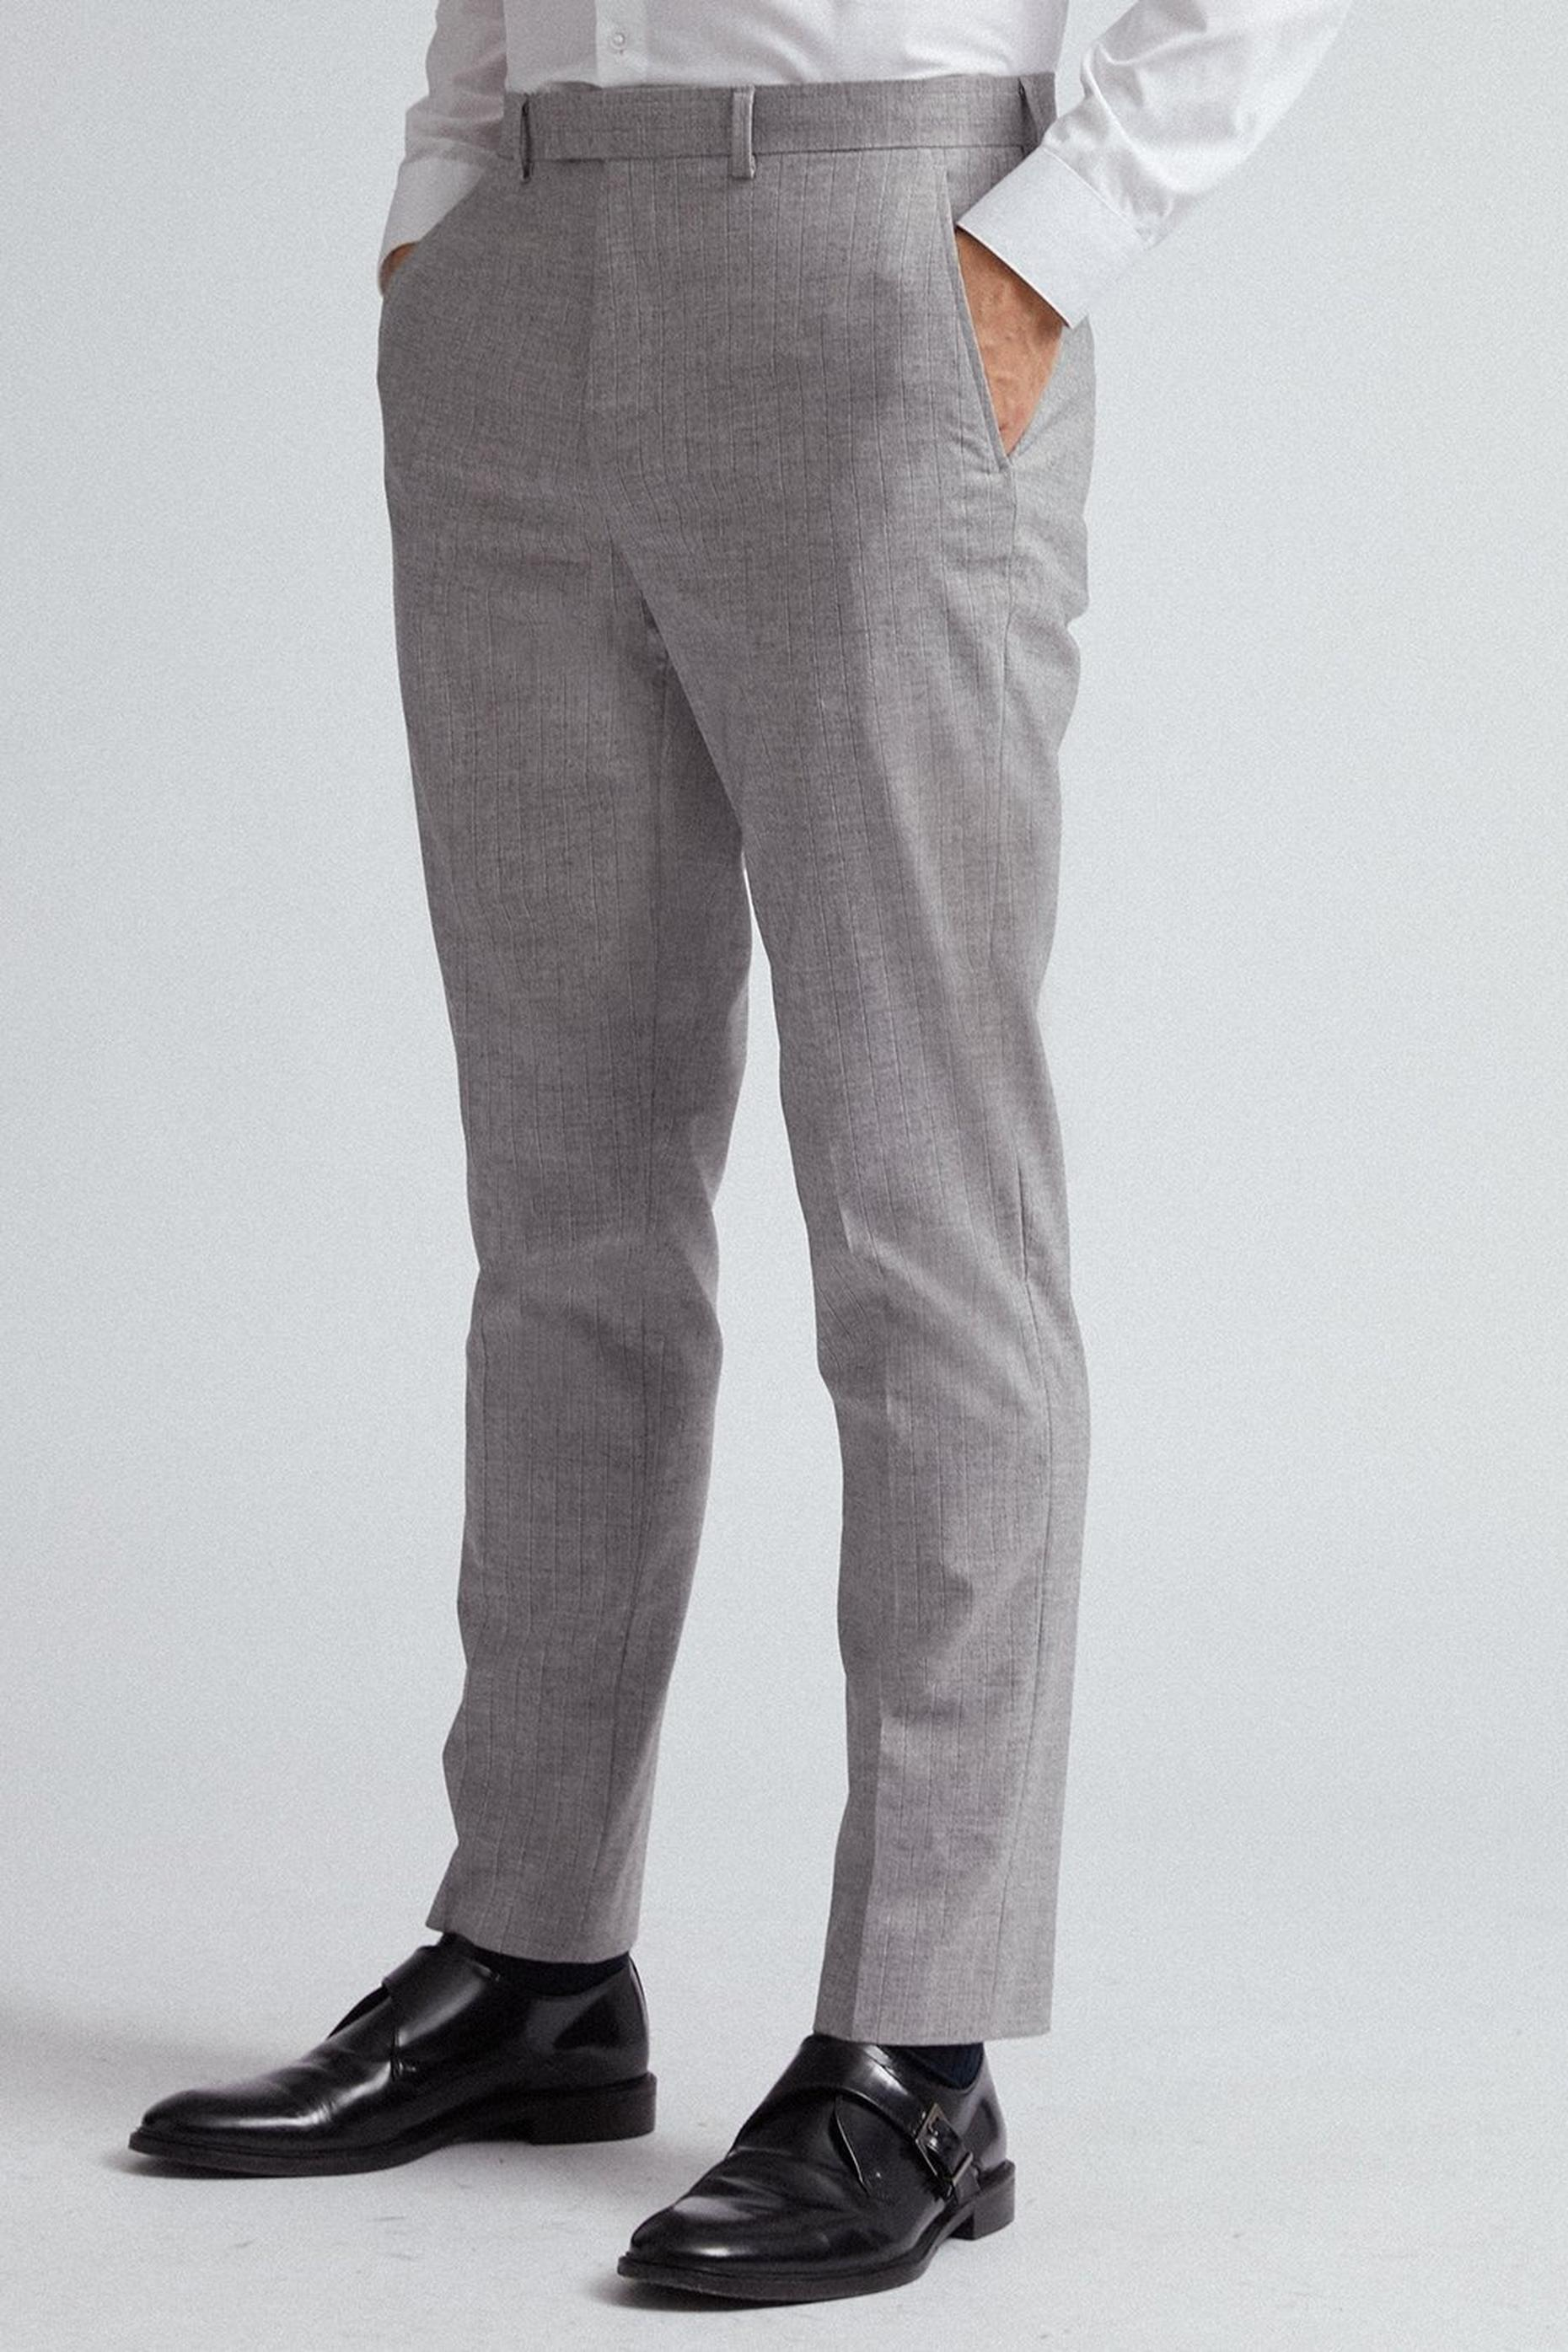 Grey and Black Stripe Slim Fit Suit Trousers